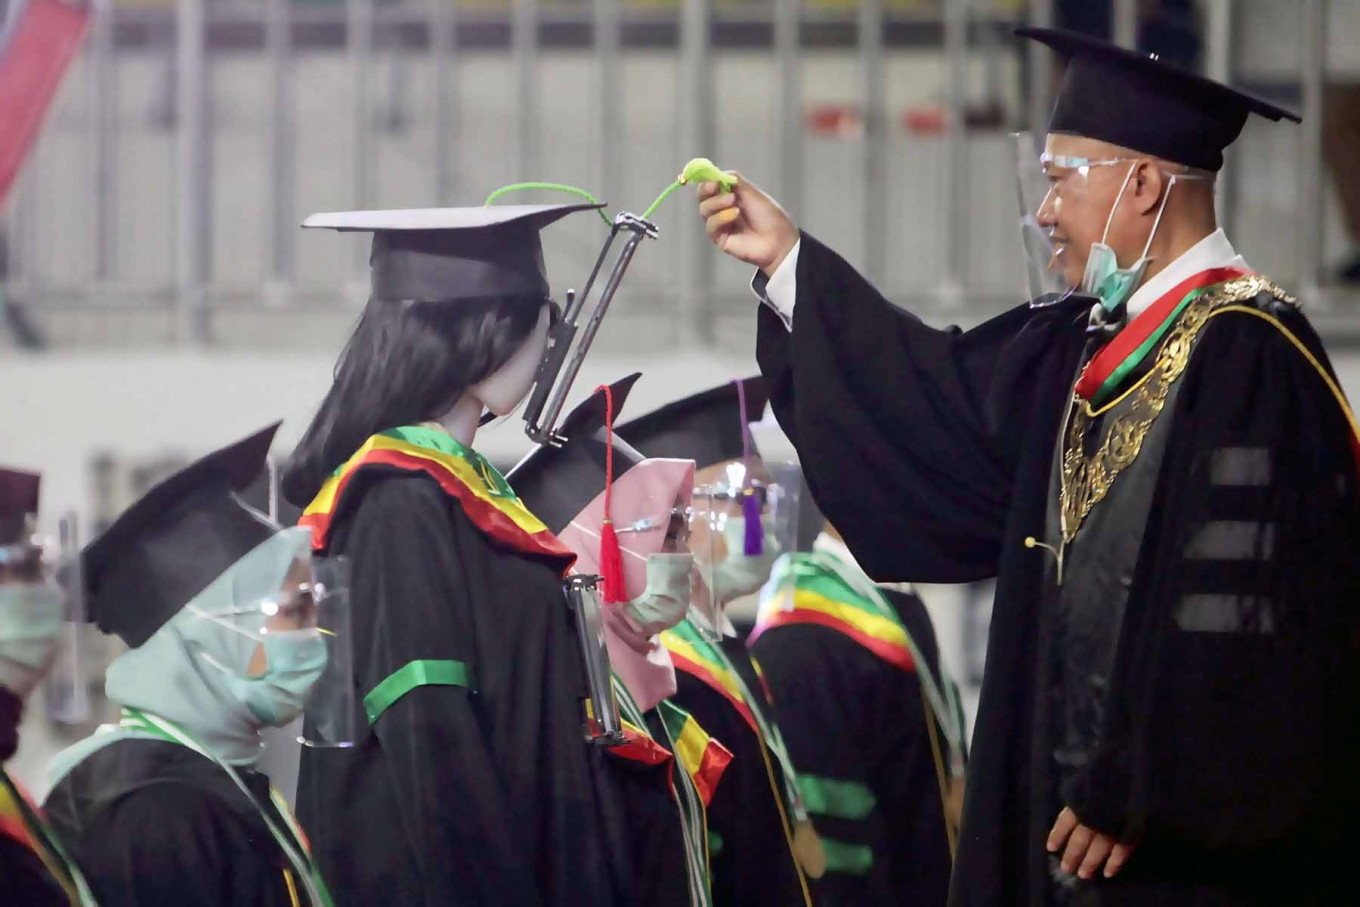 A Jakarta State University (UNJ) rector interacts virtually with a graduate during a graduation ceremony in Jakarta on Nov. 21. The ceremony celebrated 2,946 graduates and used technology to replace physical attendance amid the COVID-19 pandemic. JP/Seto Wardhana